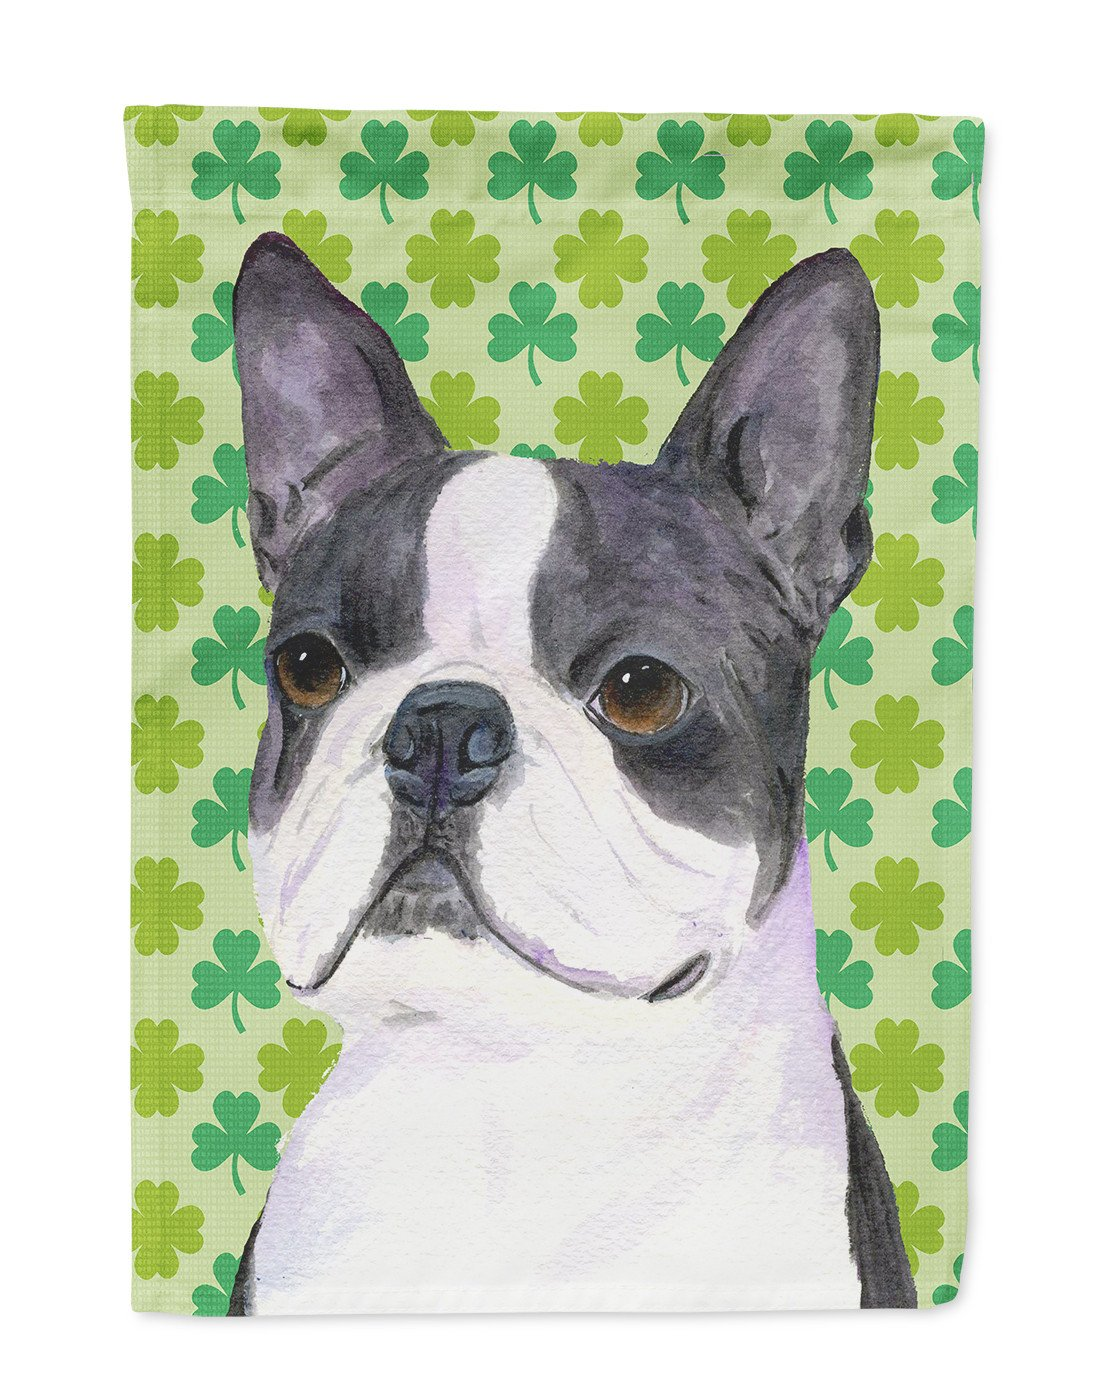 Boston Terrier St. Patrick's Day Shamrock Portrait Flag Garden Size by Caroline's Treasures